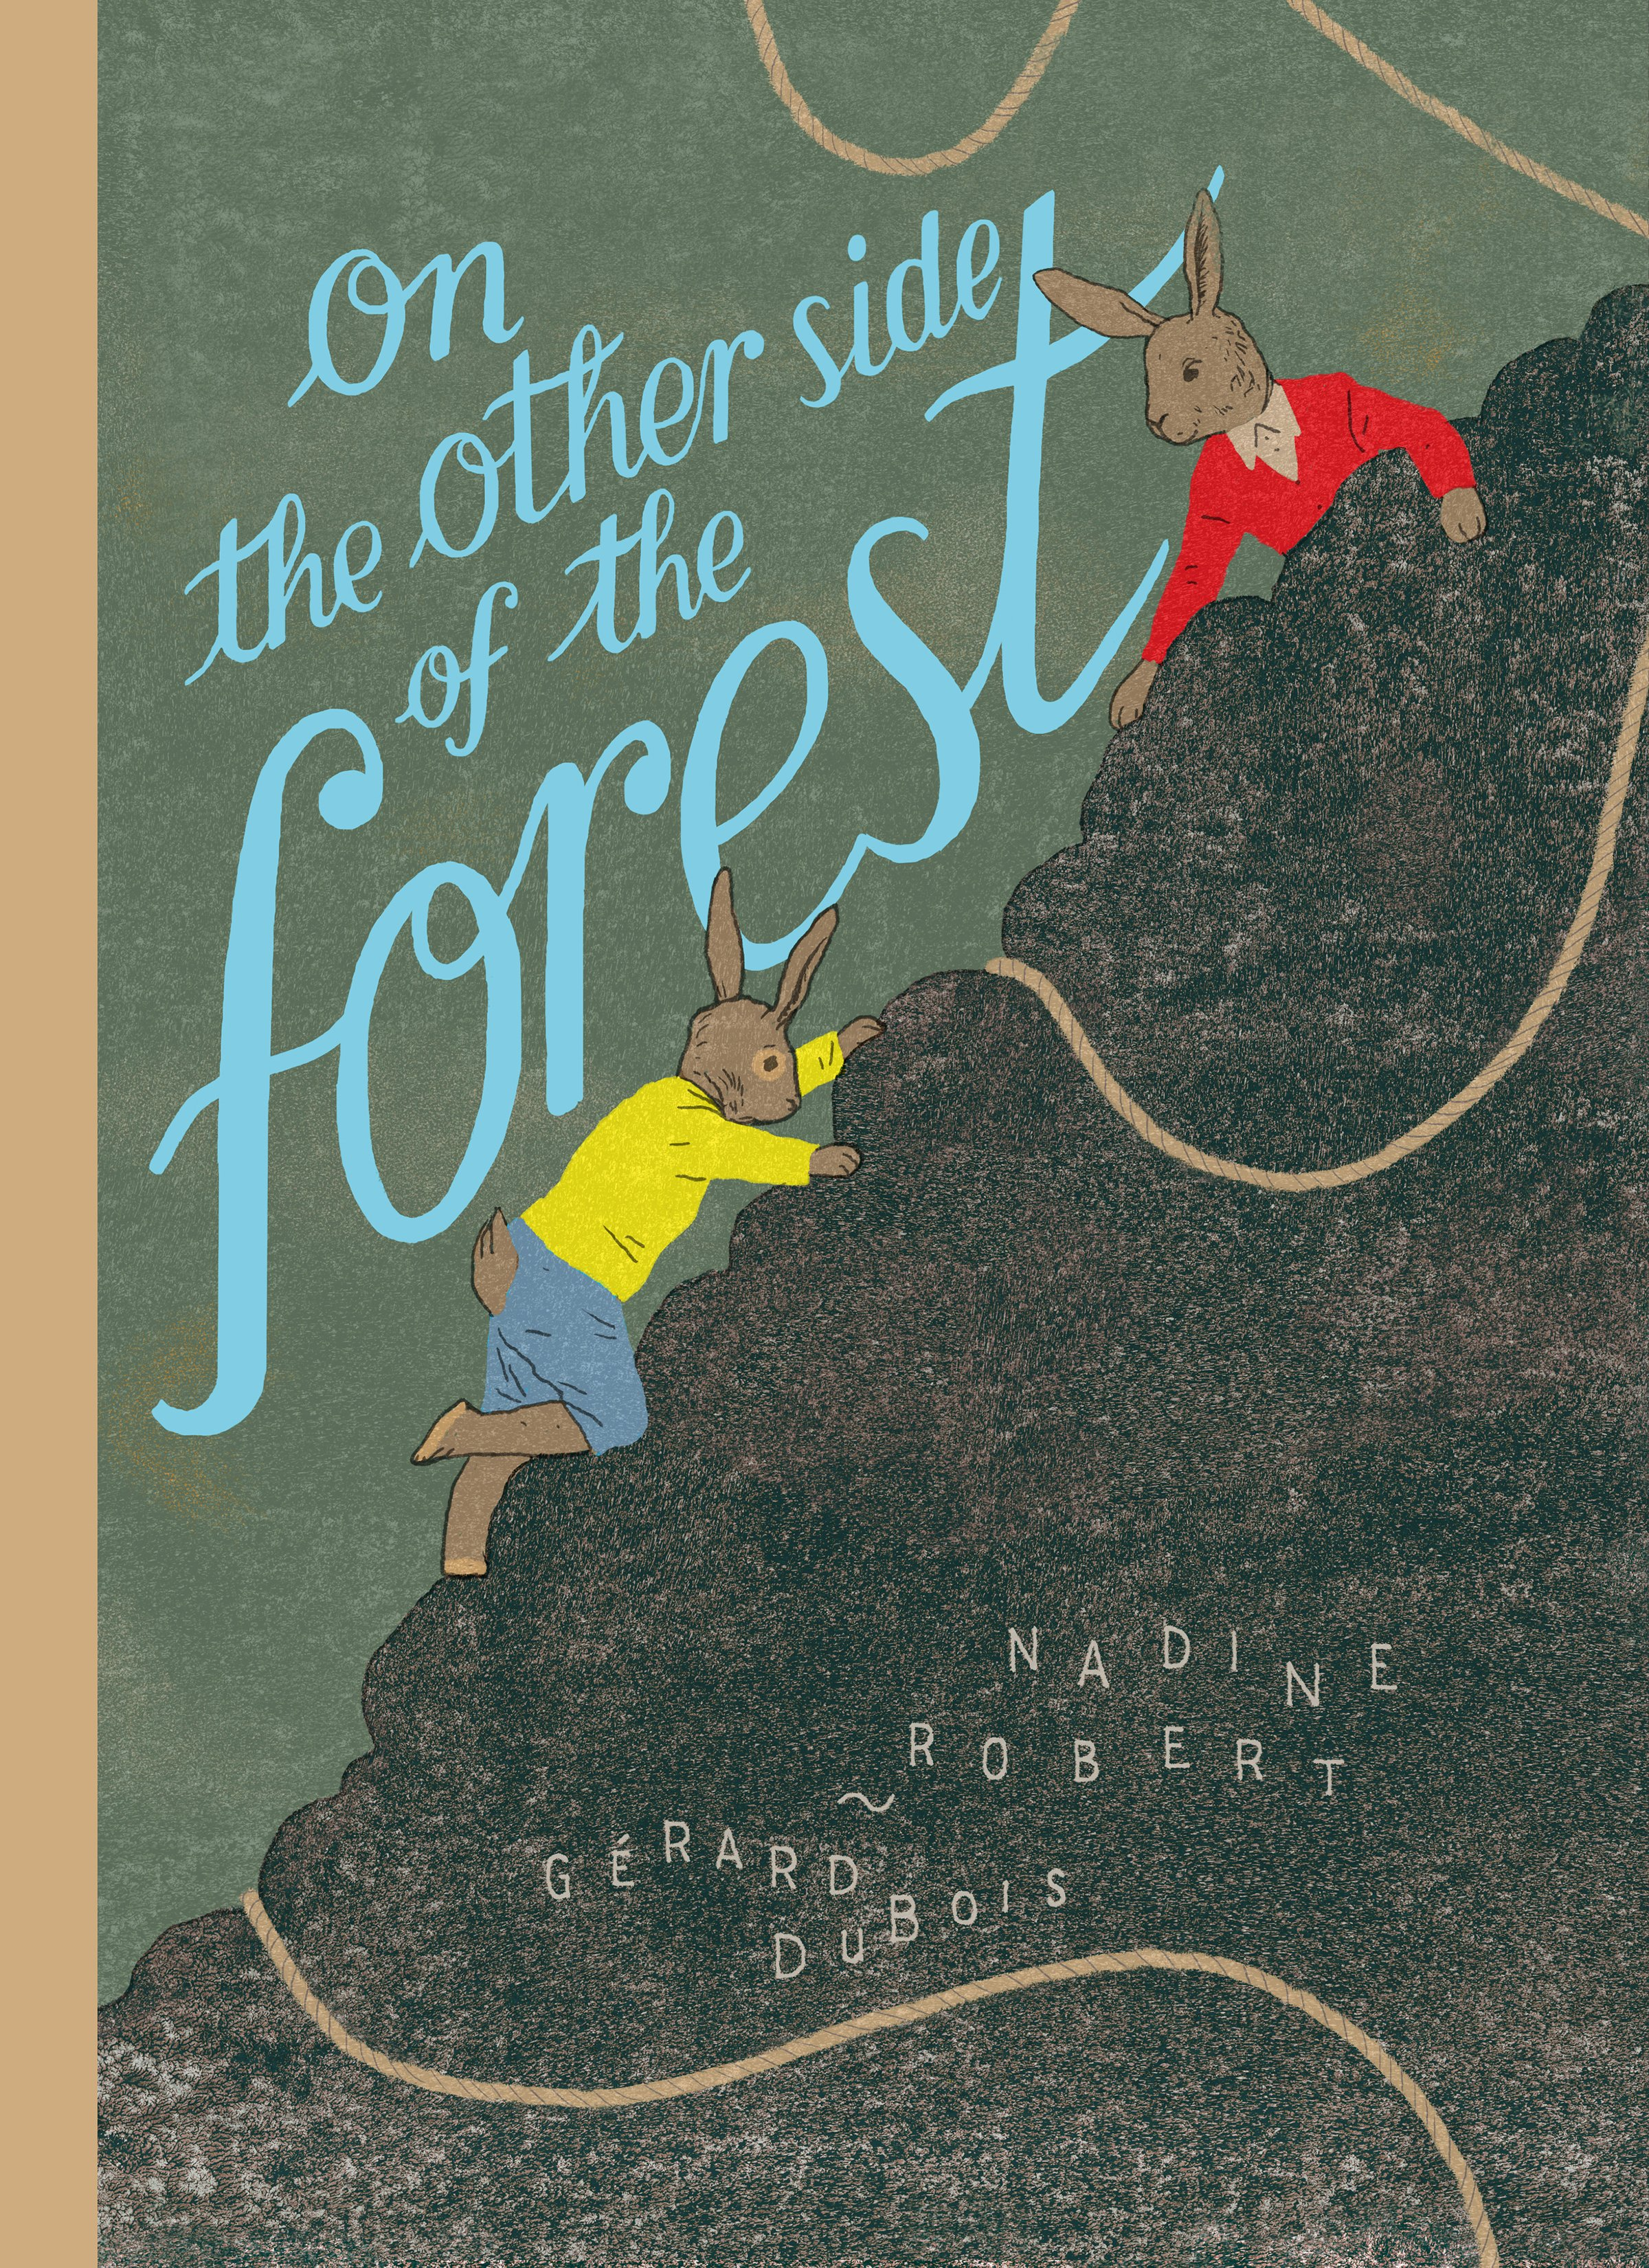 Book cover of ON THE OTHER SIDE OF THE FOREST